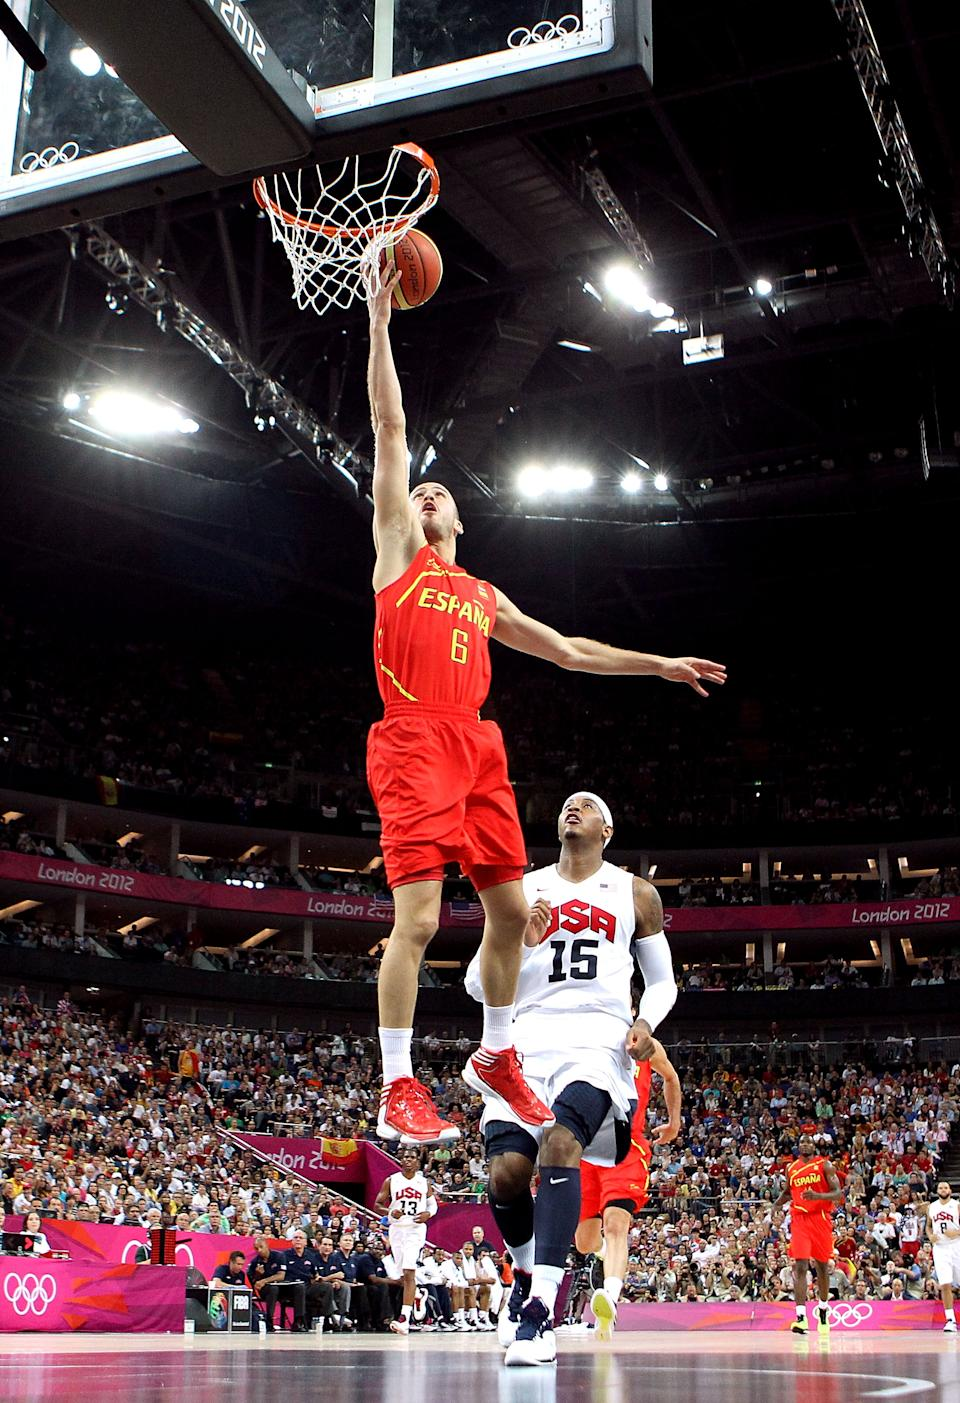 LONDON, ENGLAND - AUGUST 12: Sergio Rodriguez #6 of Spain gets past Carmelo Anthony #15 of the United States to score during the Men's Basketball gold medal game between the United States and Spain on Day 16 of the London 2012 Olympics Games at North Greenwich Arena on August 12, 2012 in London, England. (Photo by Christian Petersen/Getty Images)